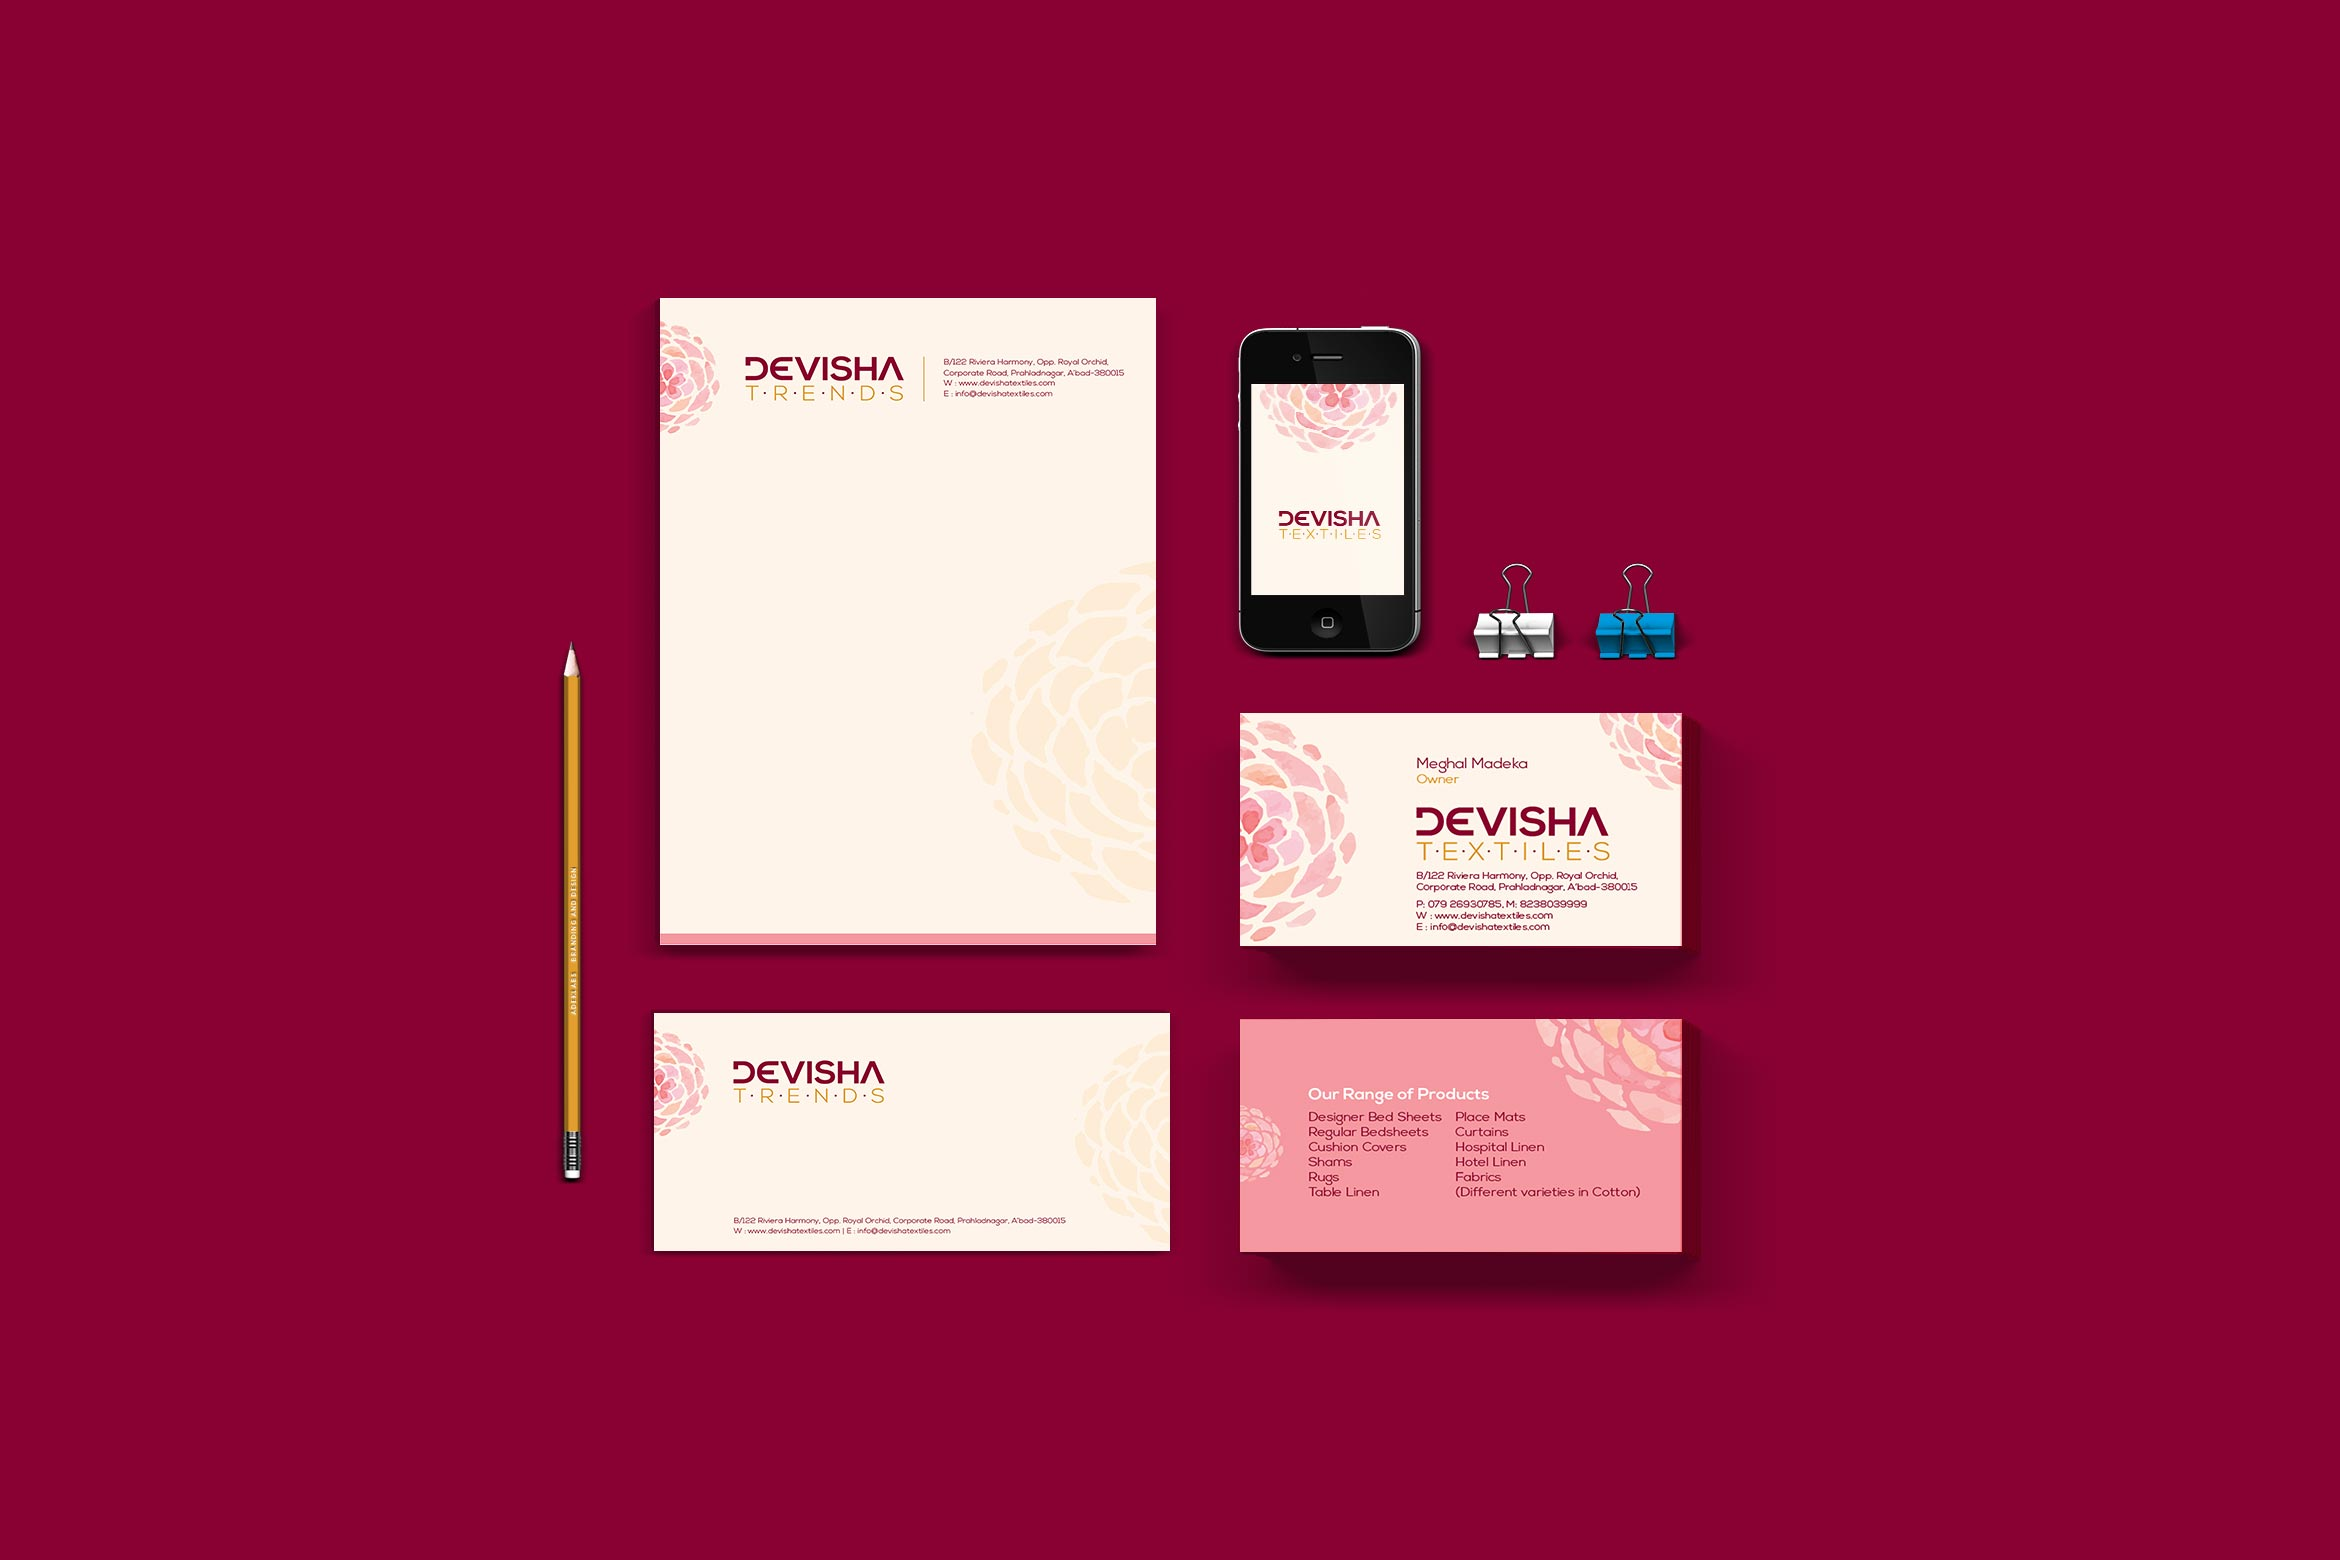 devisha-trends-stationary